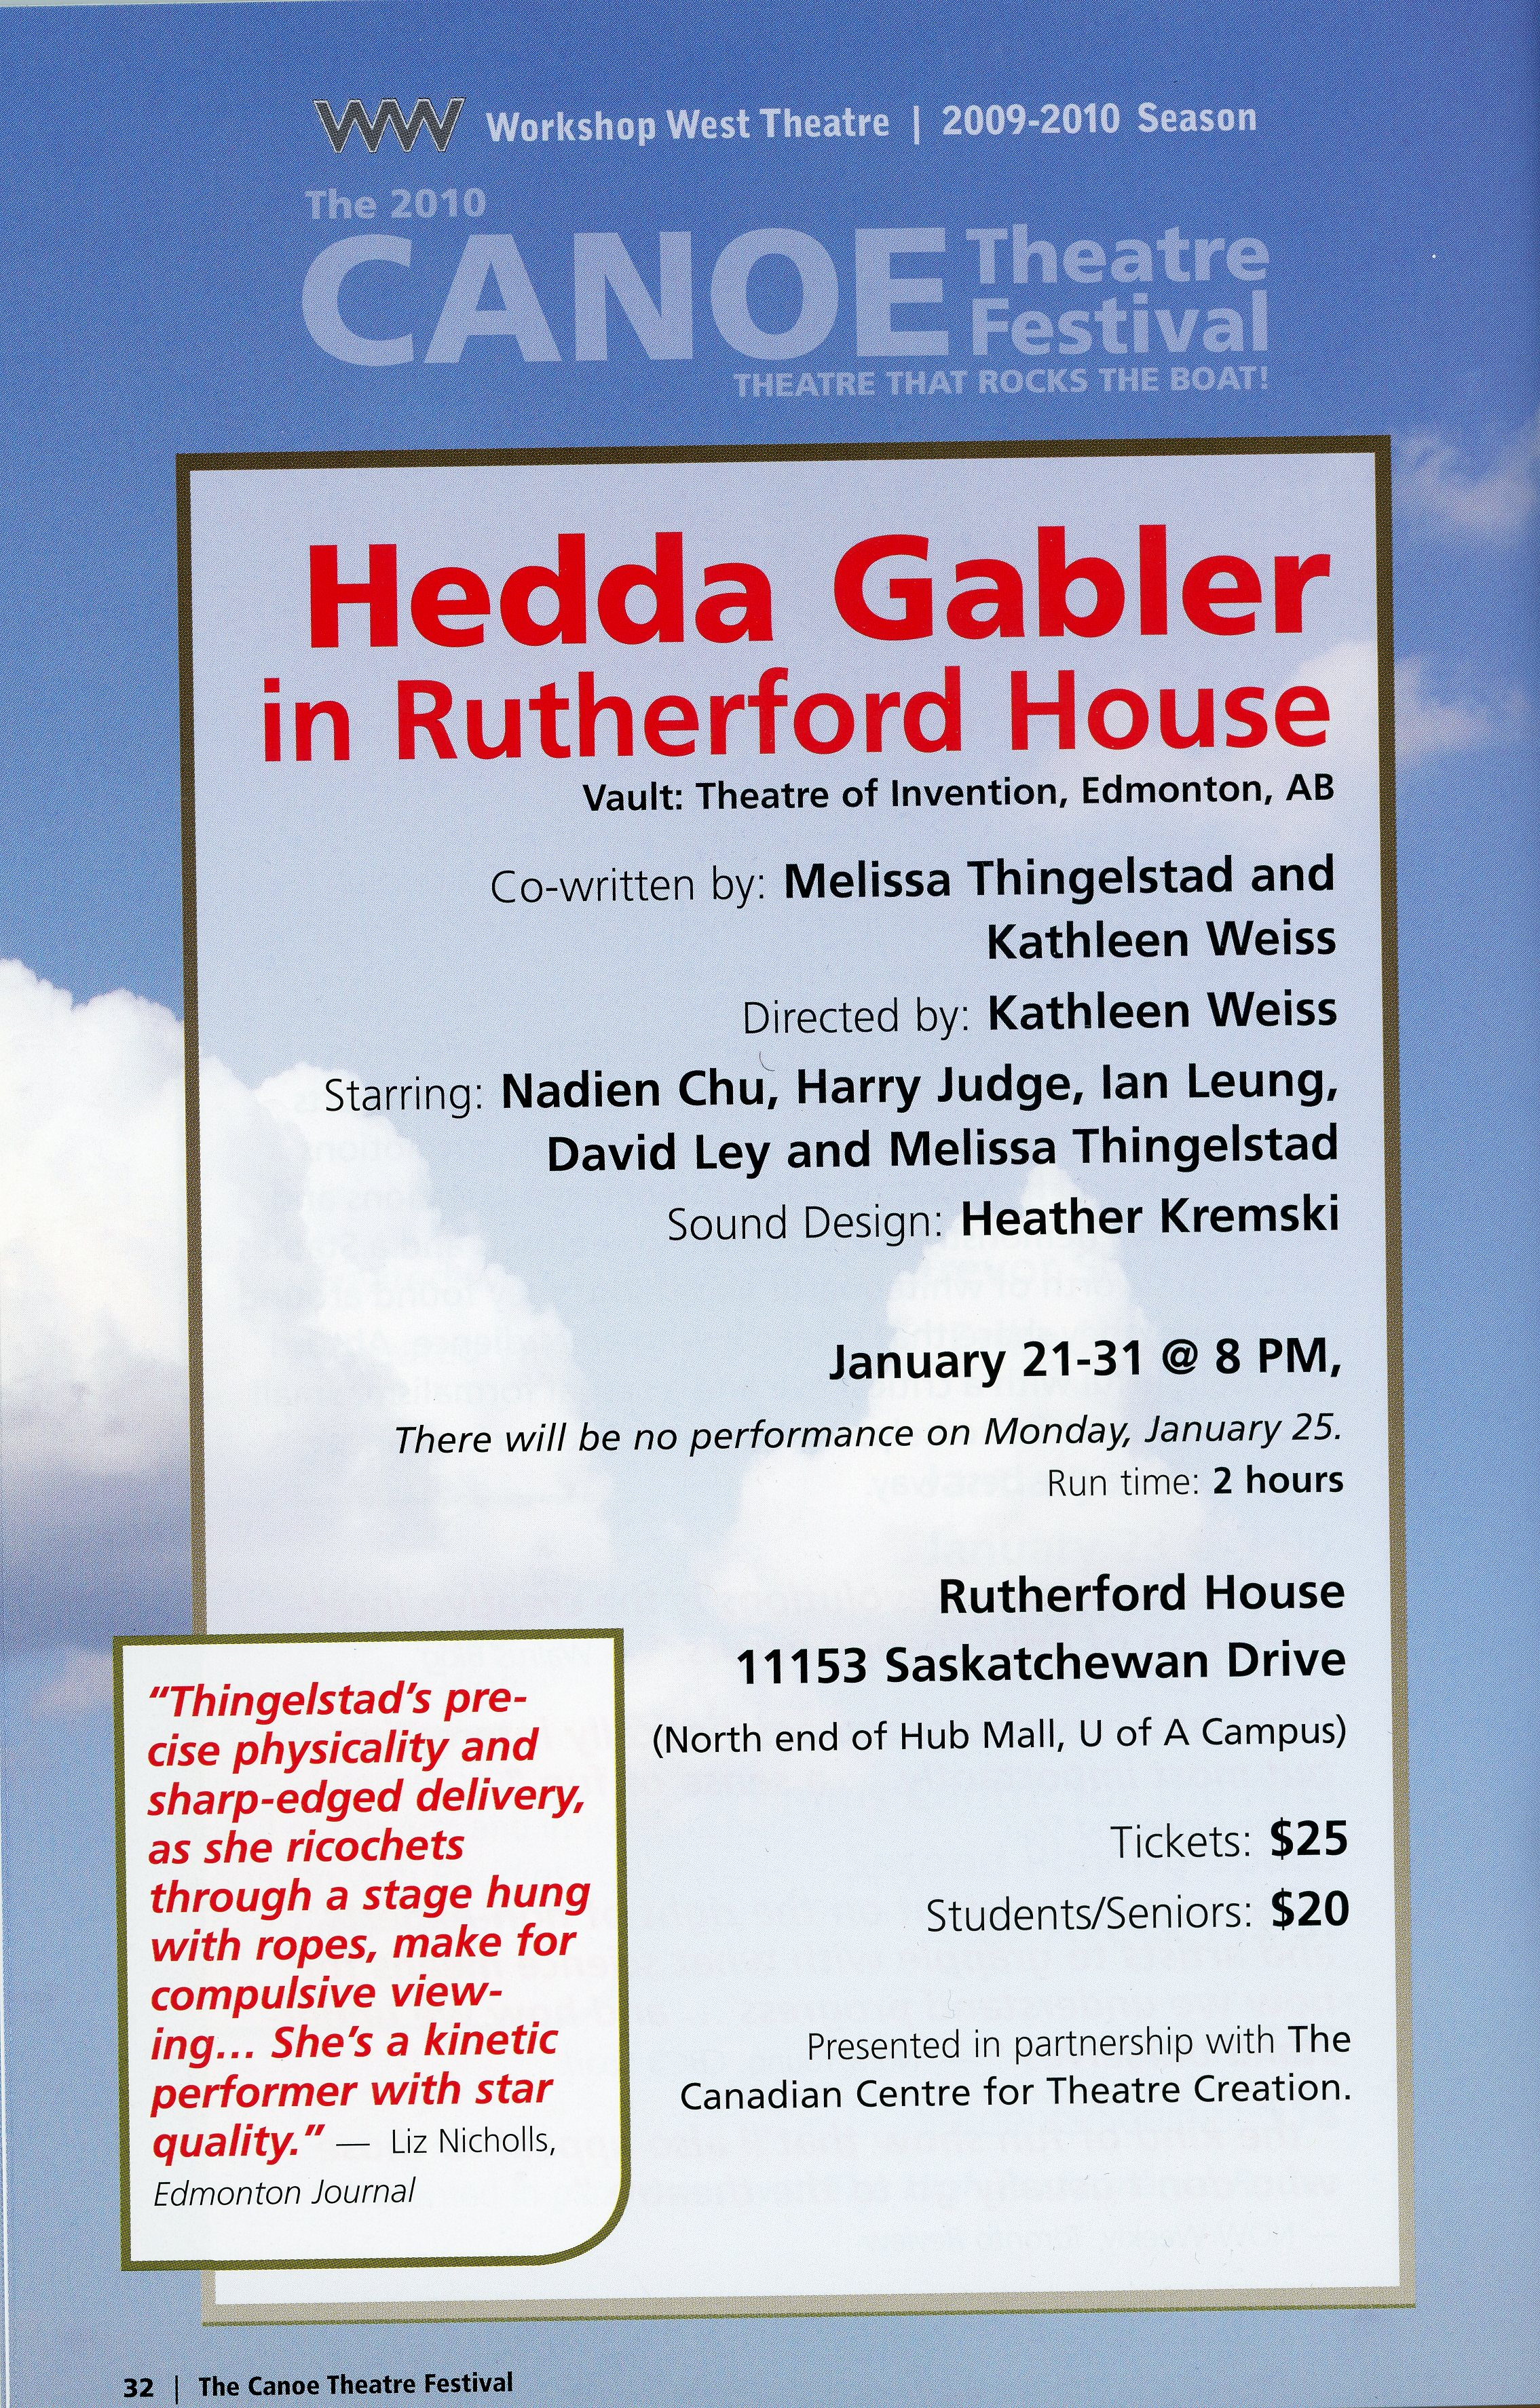 The Canoe Festival (2009-2010)_Production Information-Hedda Gabler in Rutherford House_JPEG.jpg